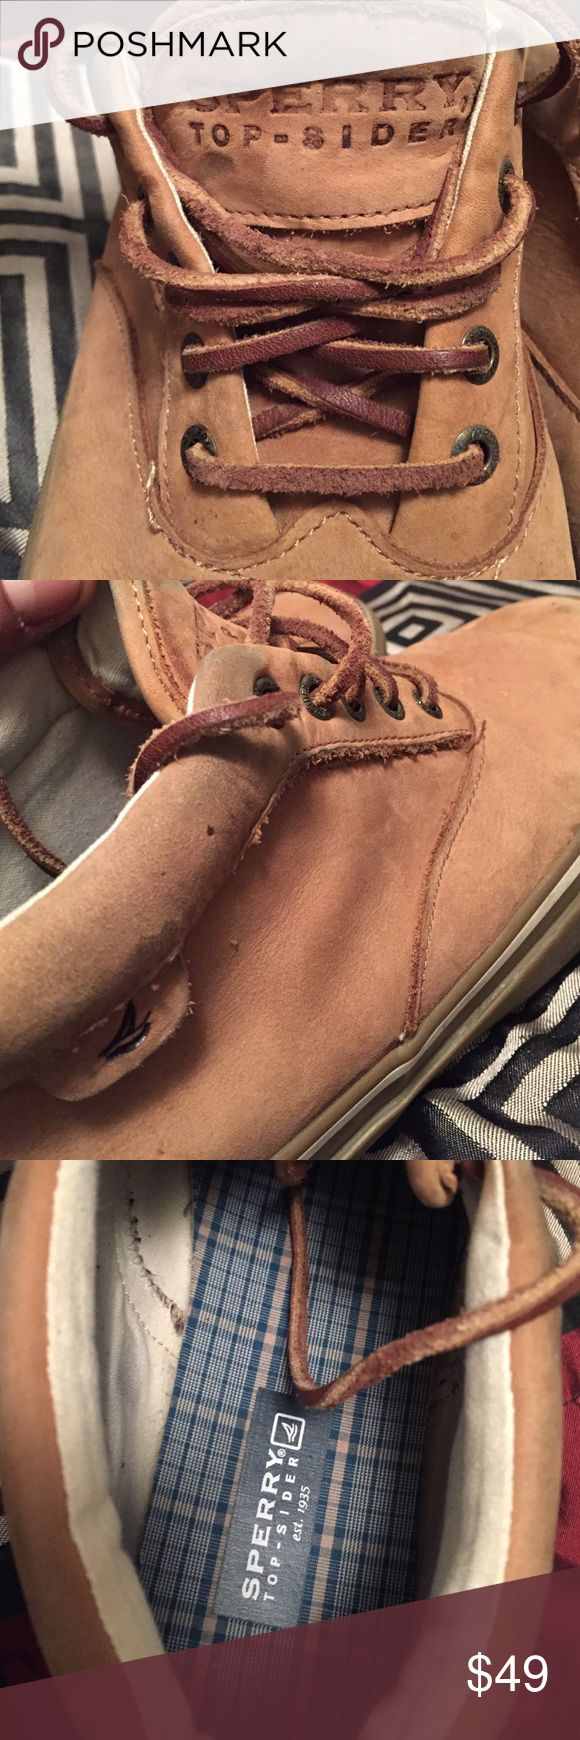 Sperry Top Sider shoes SPERRY Top-sider men's chukka boot. Size: 9 Sperry Top-Sider Shoes Chukka Boots